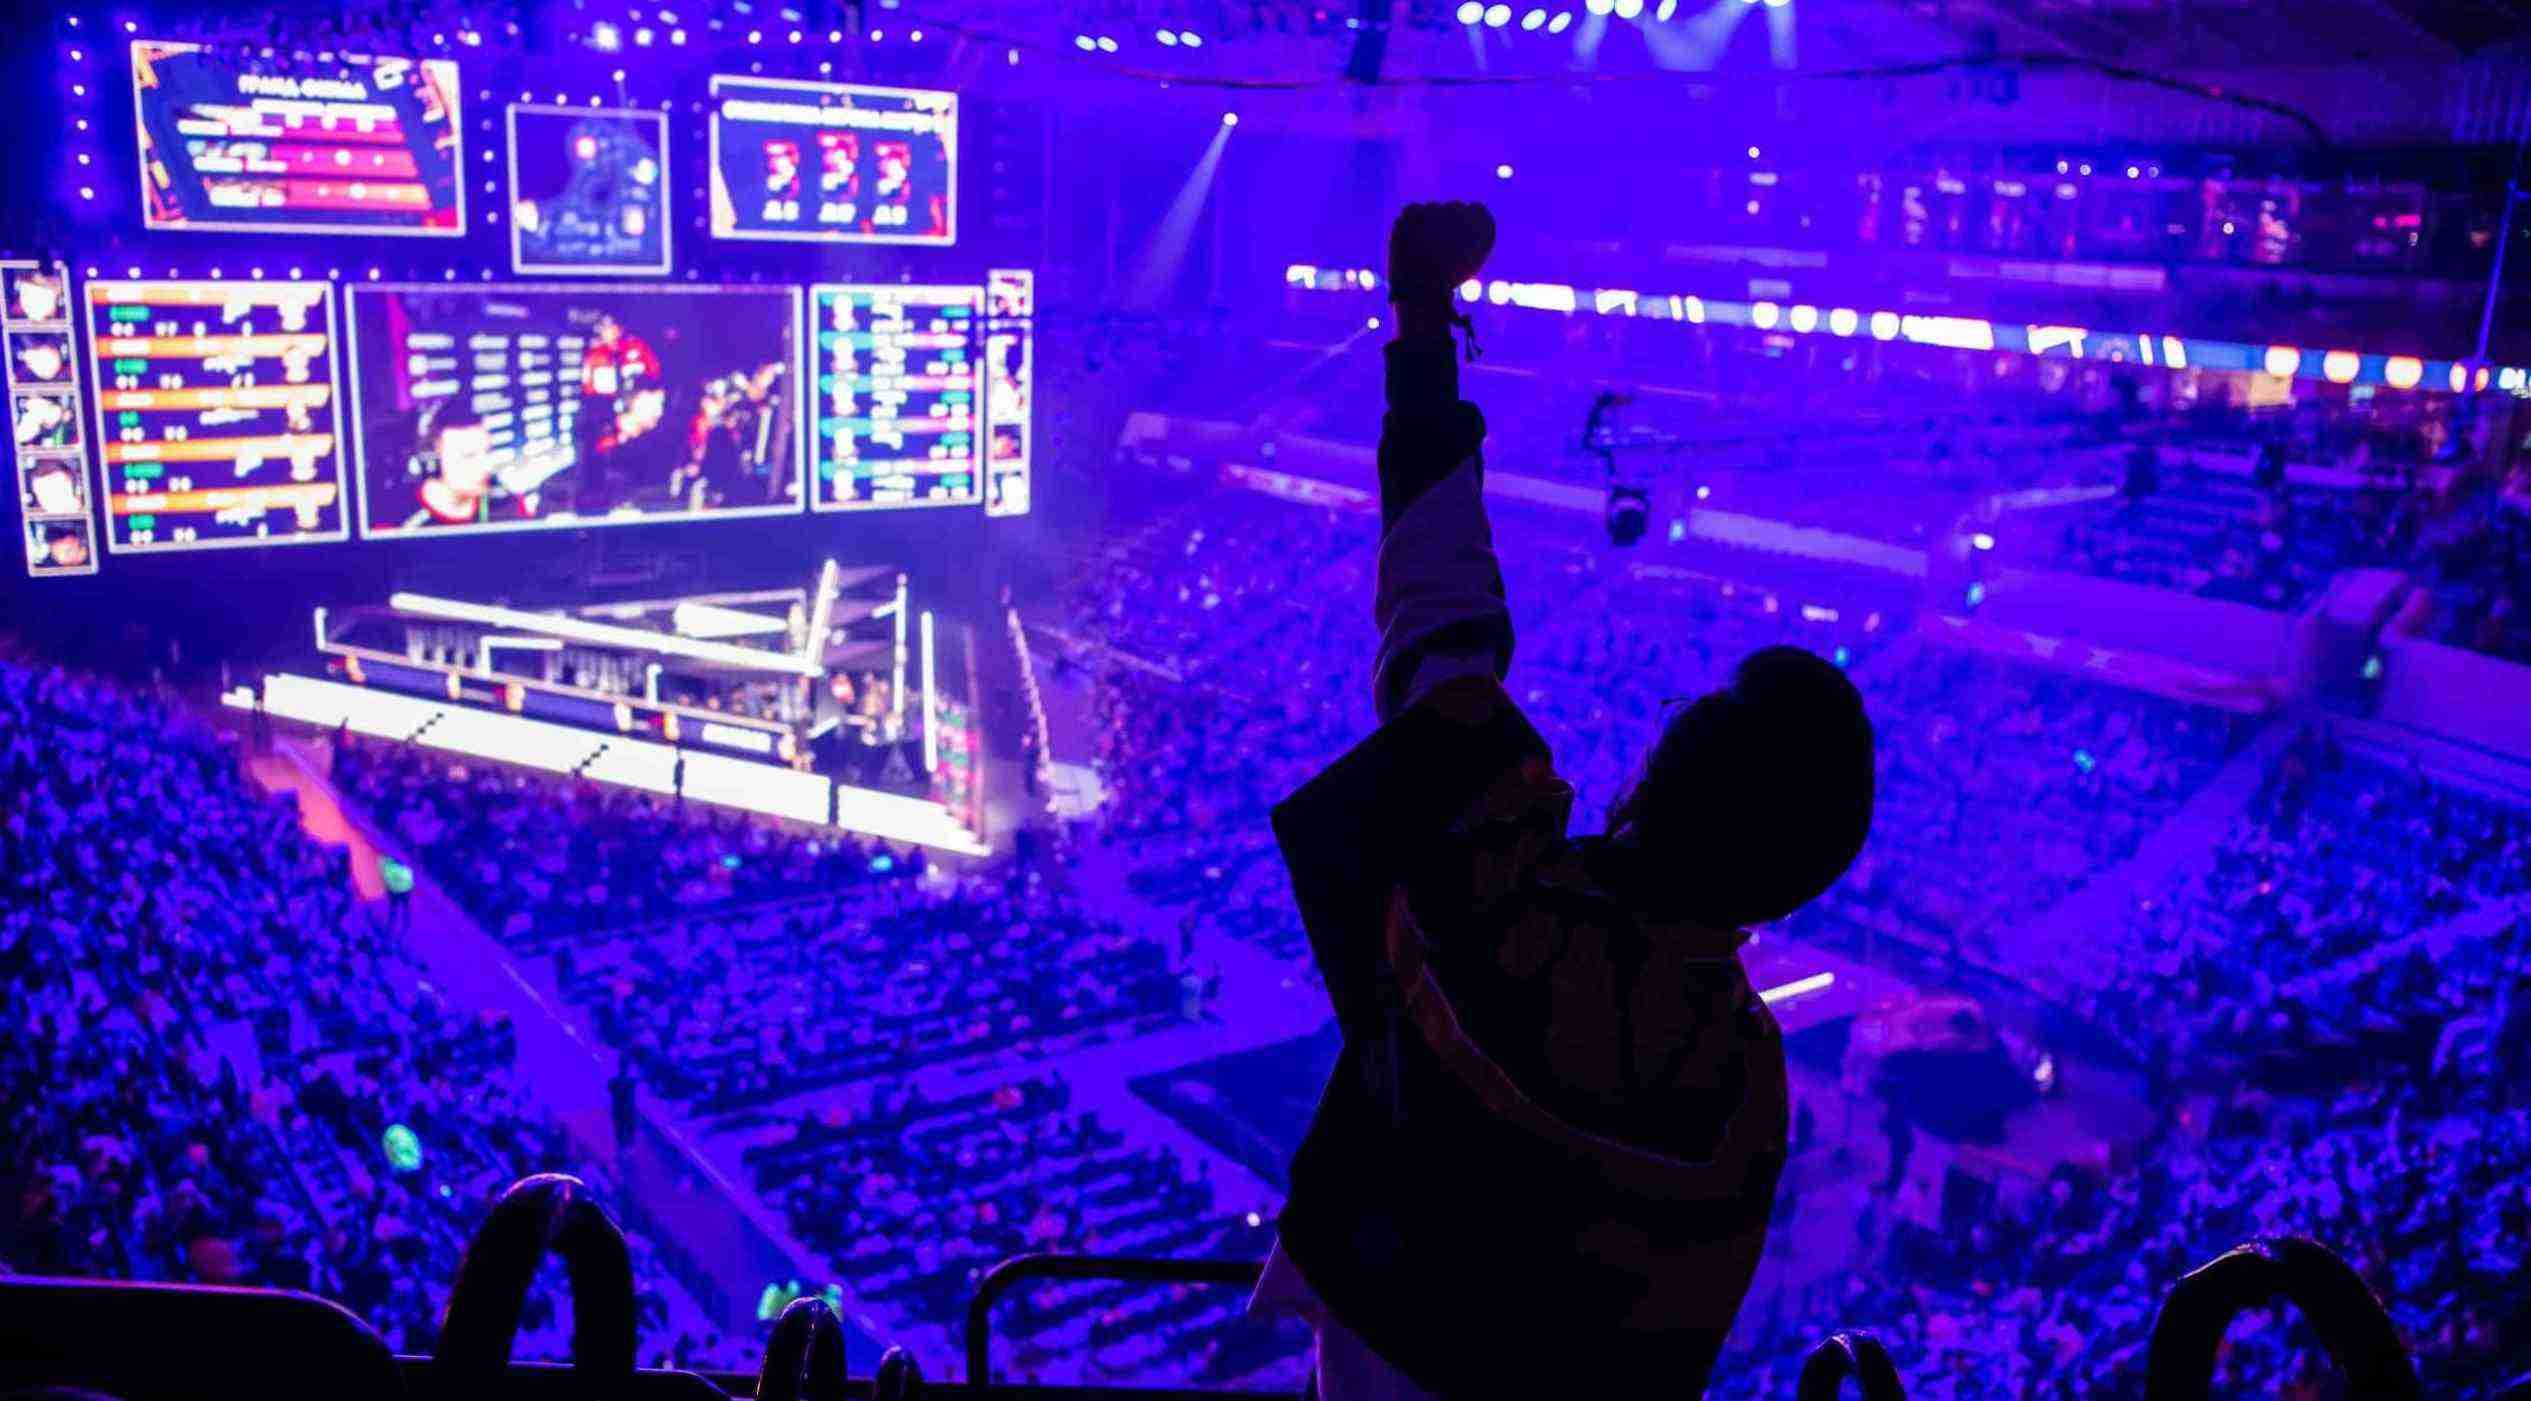 How to host an esports tournament full guide 2021 - esports fan at the venue